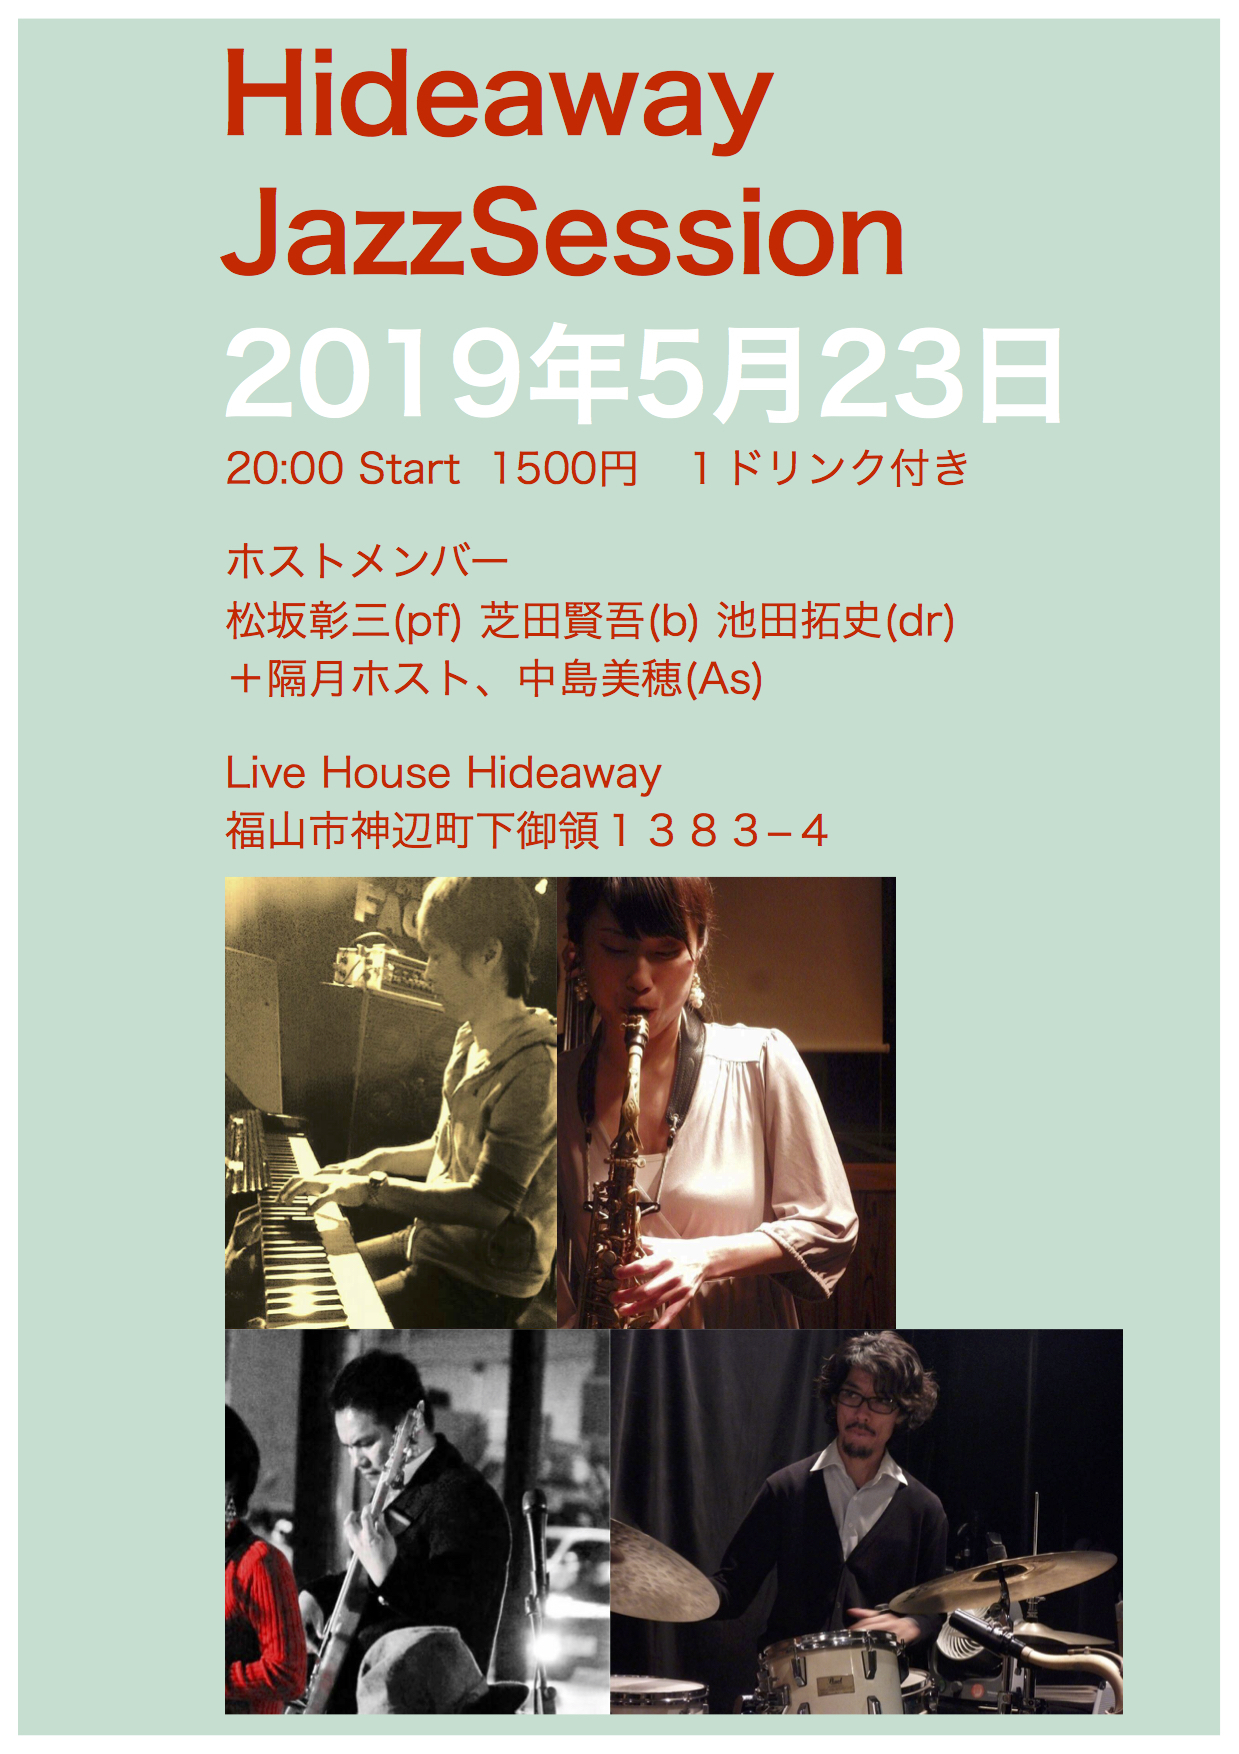 newsession20190523.jpg